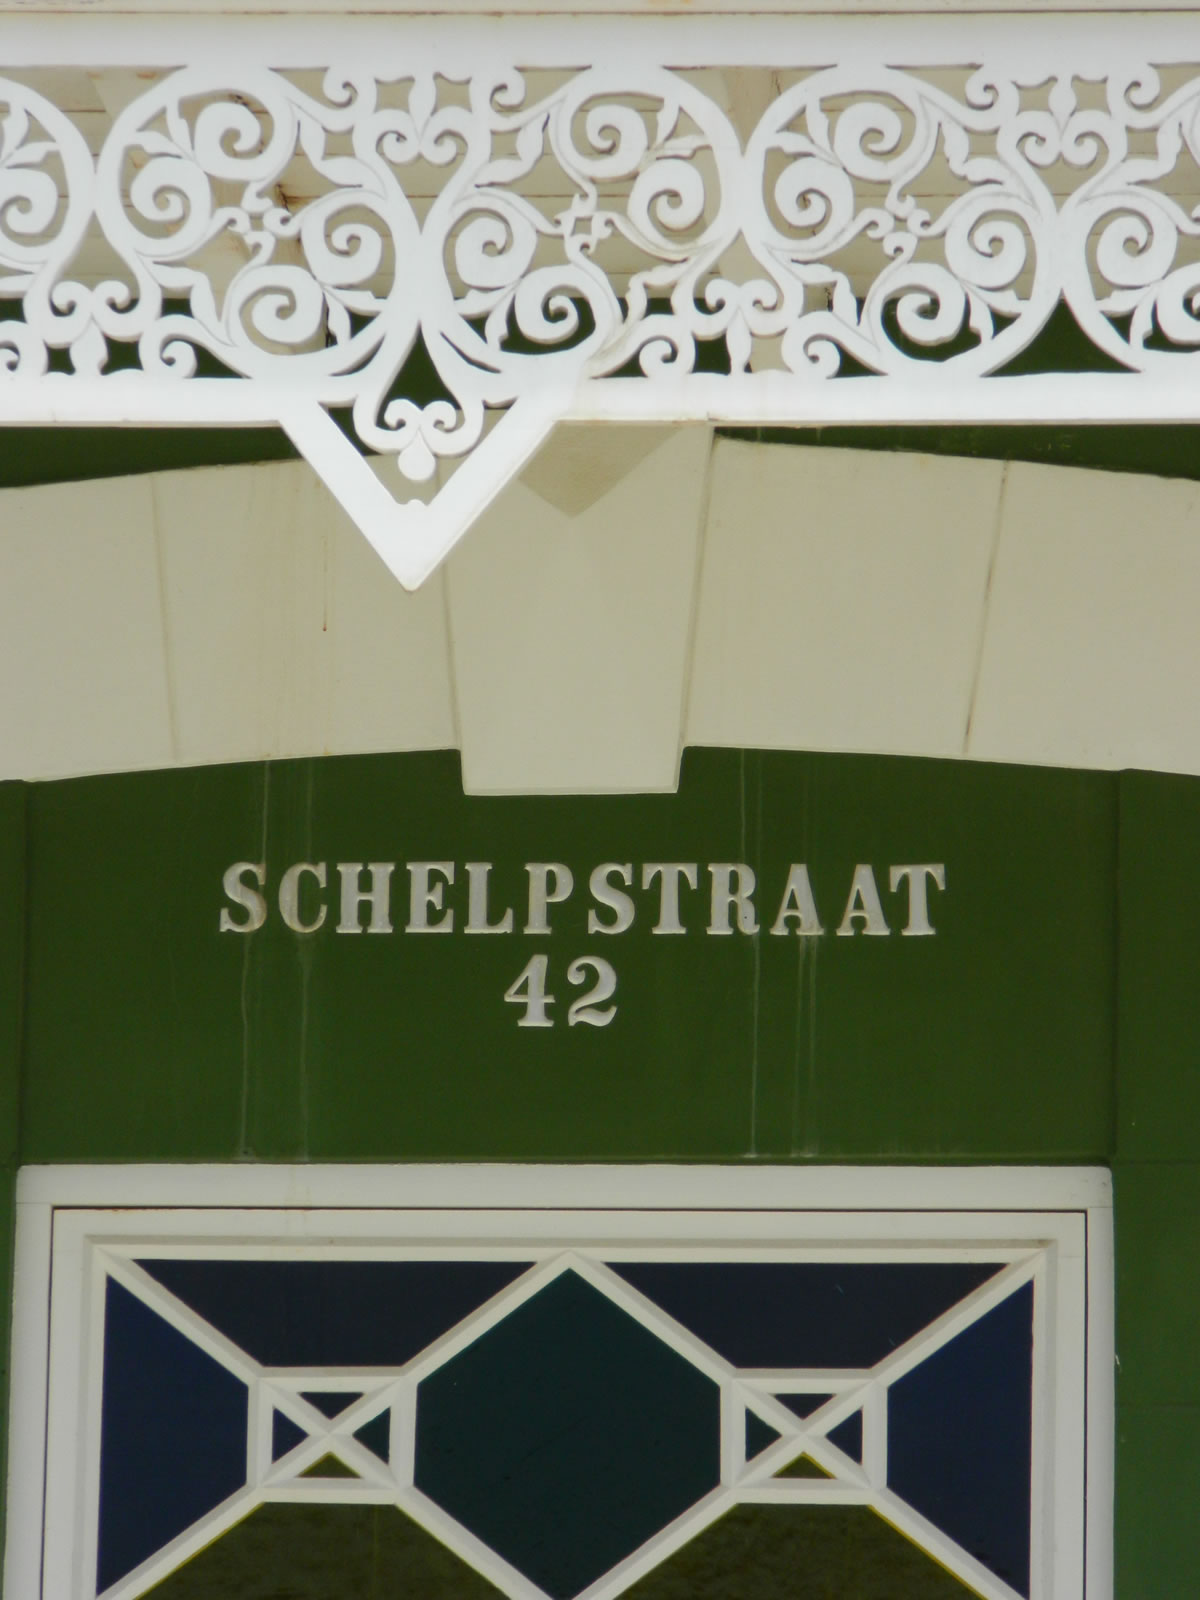 House number at Green 'Ecury' House | Archeological Museum Schelpstraat 42, Oranjestad